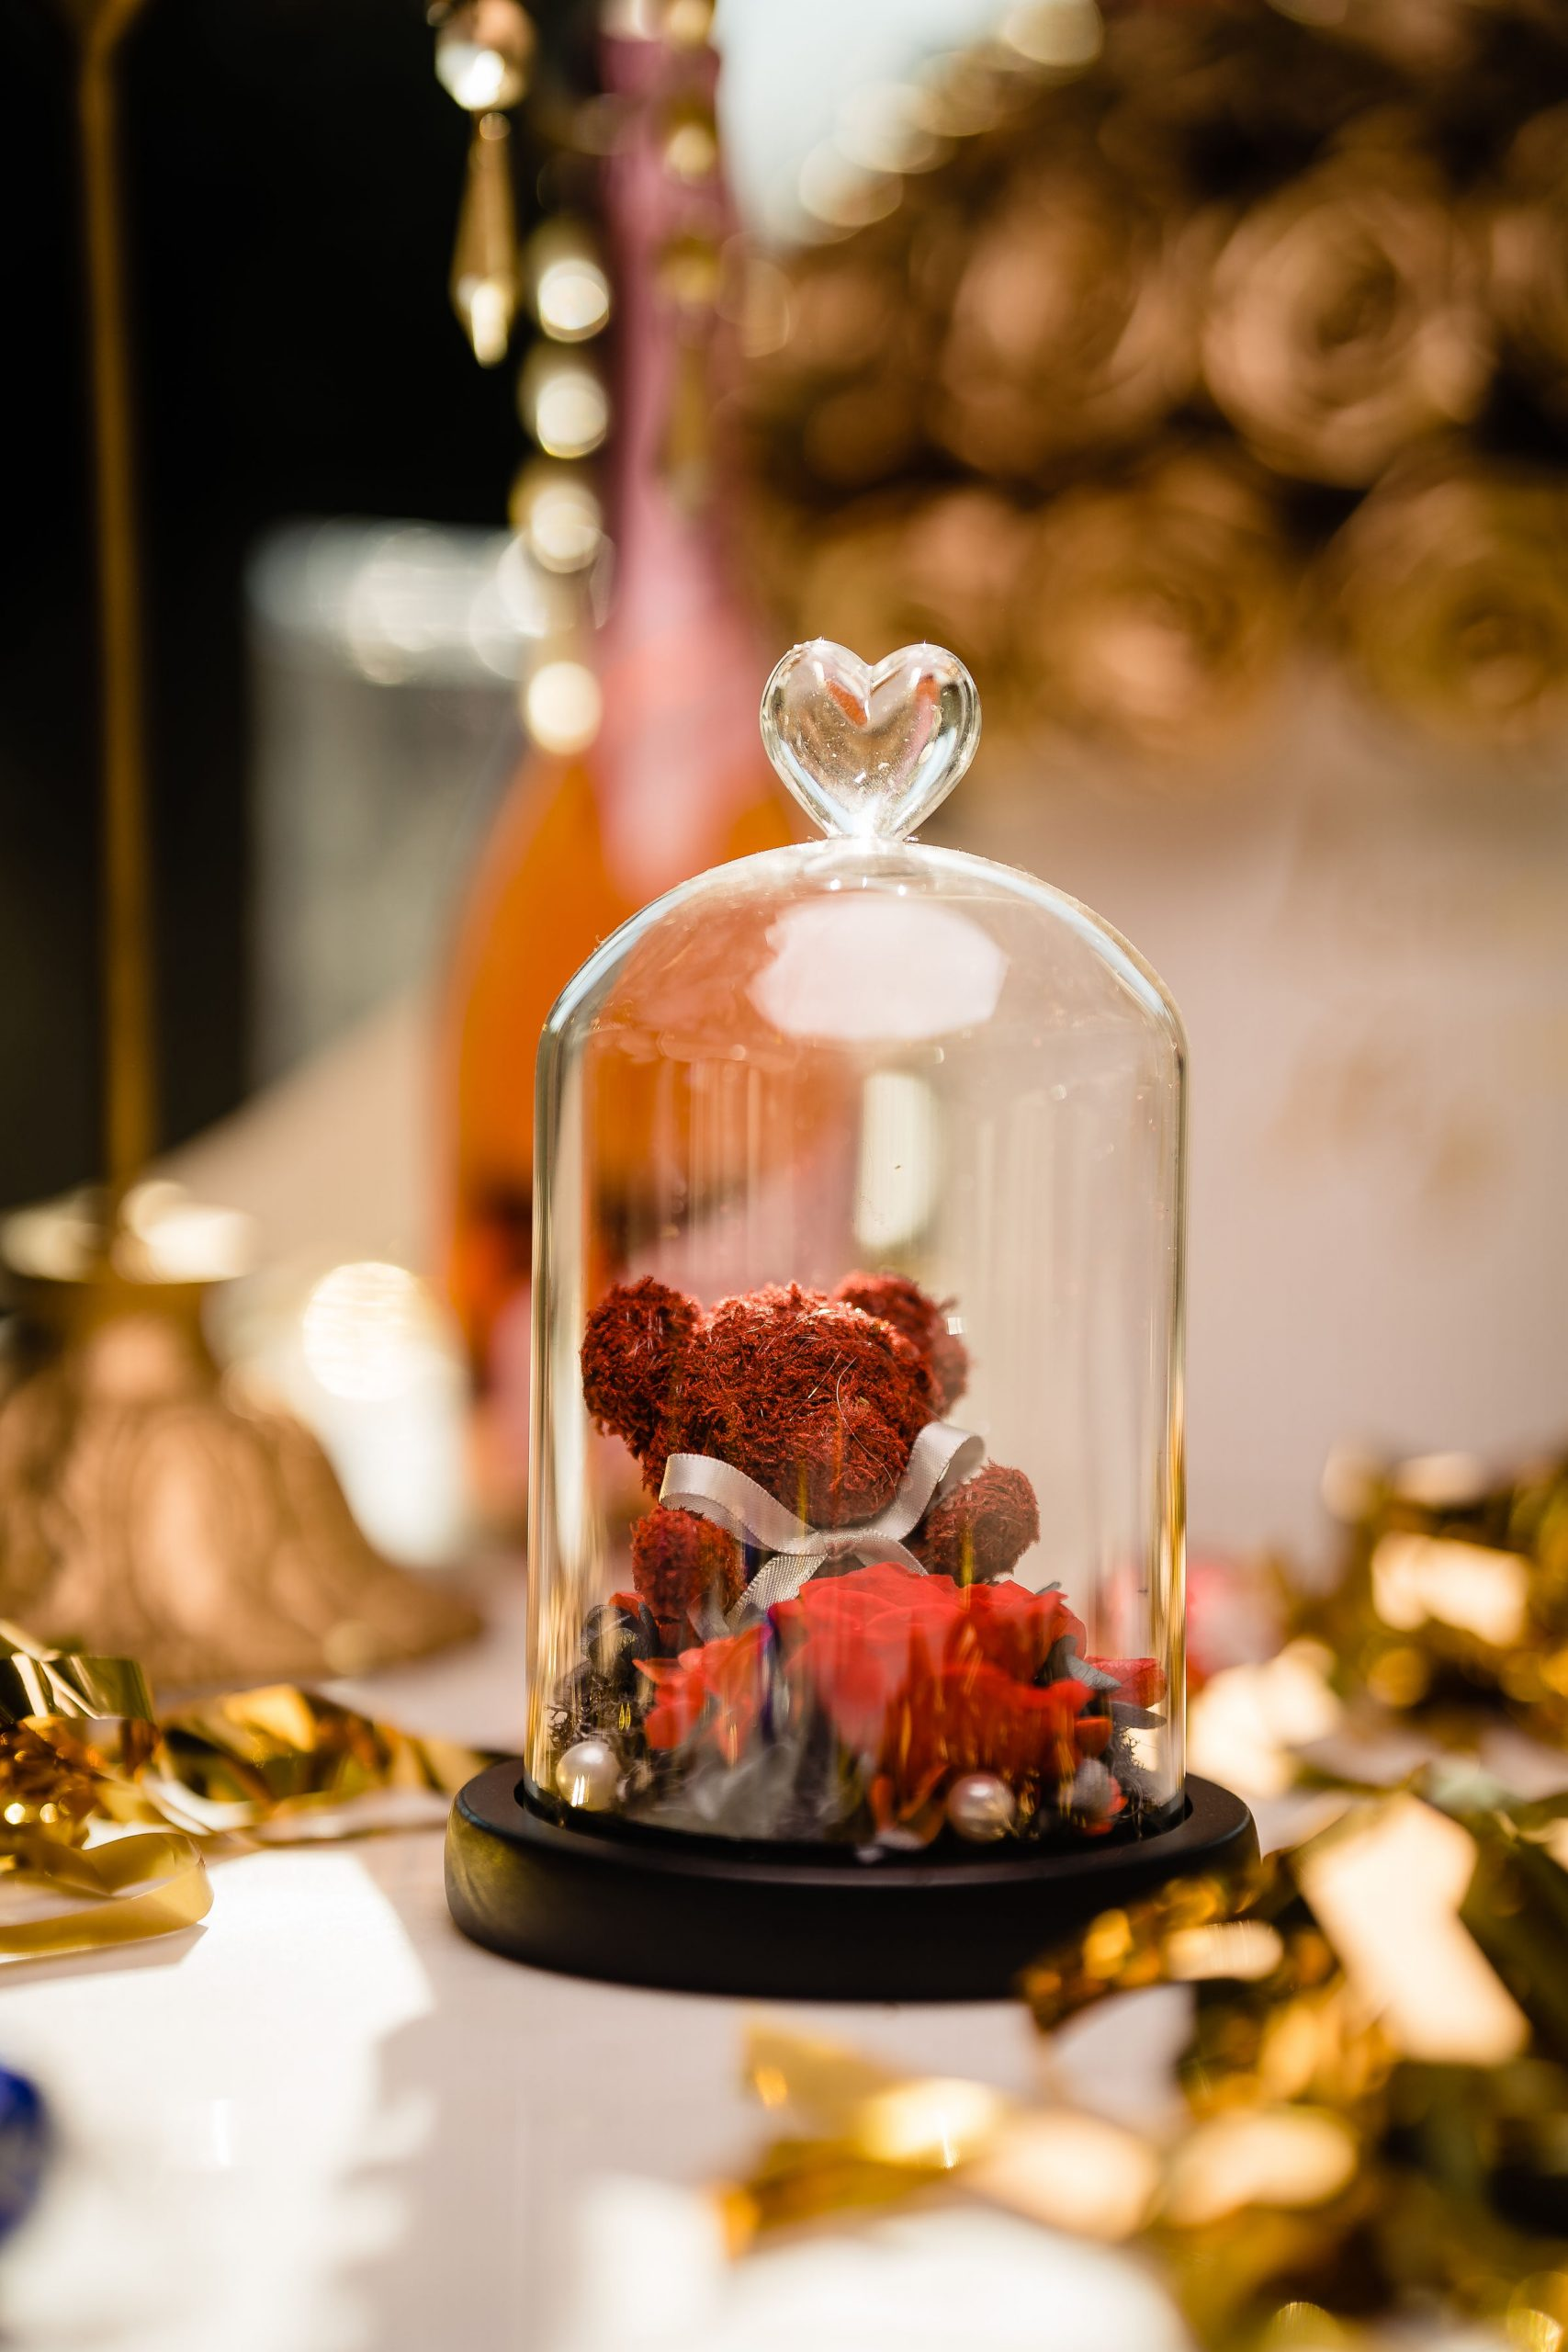 Beautifully arranged flower boutique styled shoot